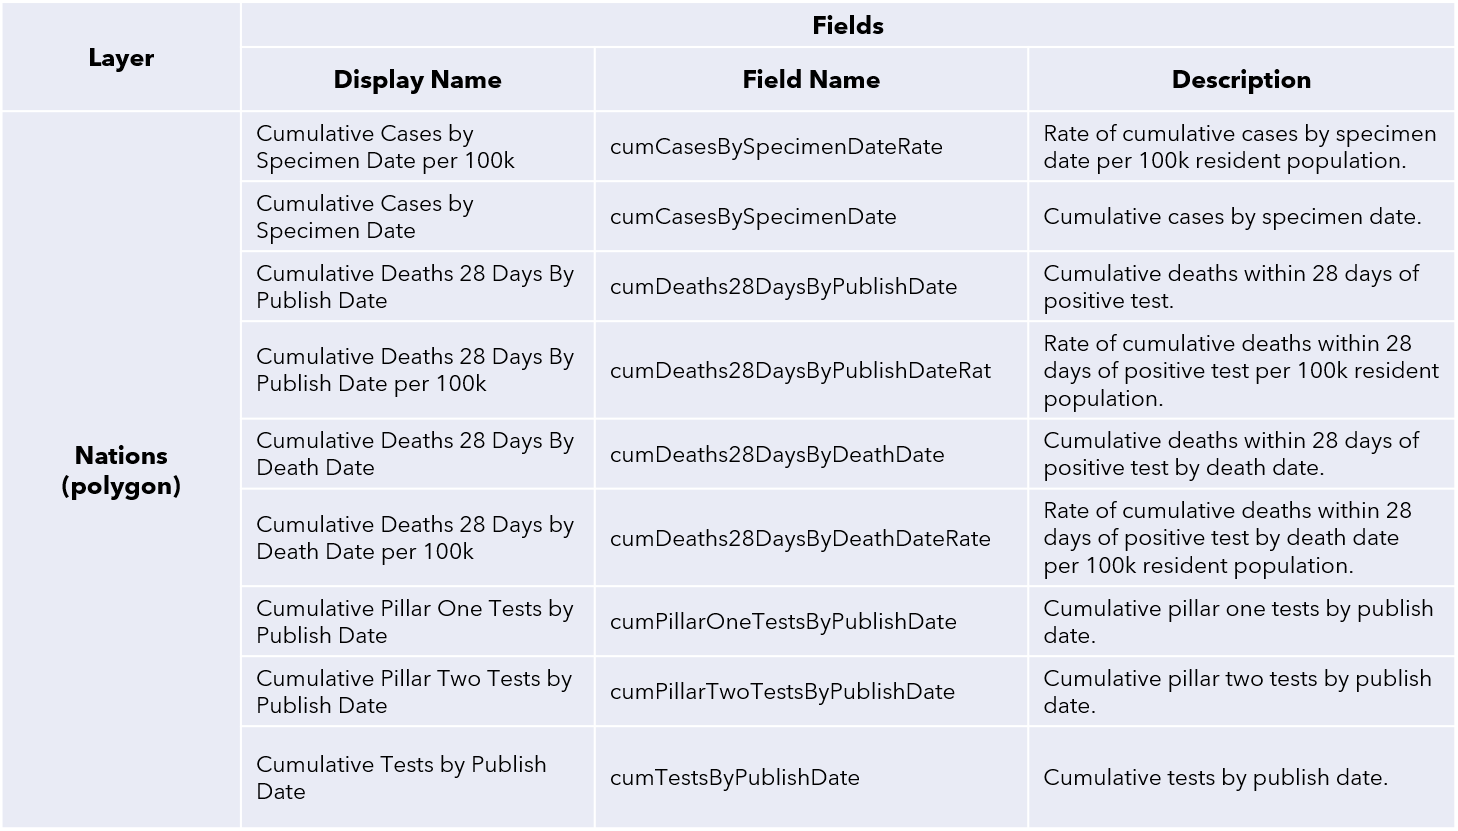 Table of field names and descriptions